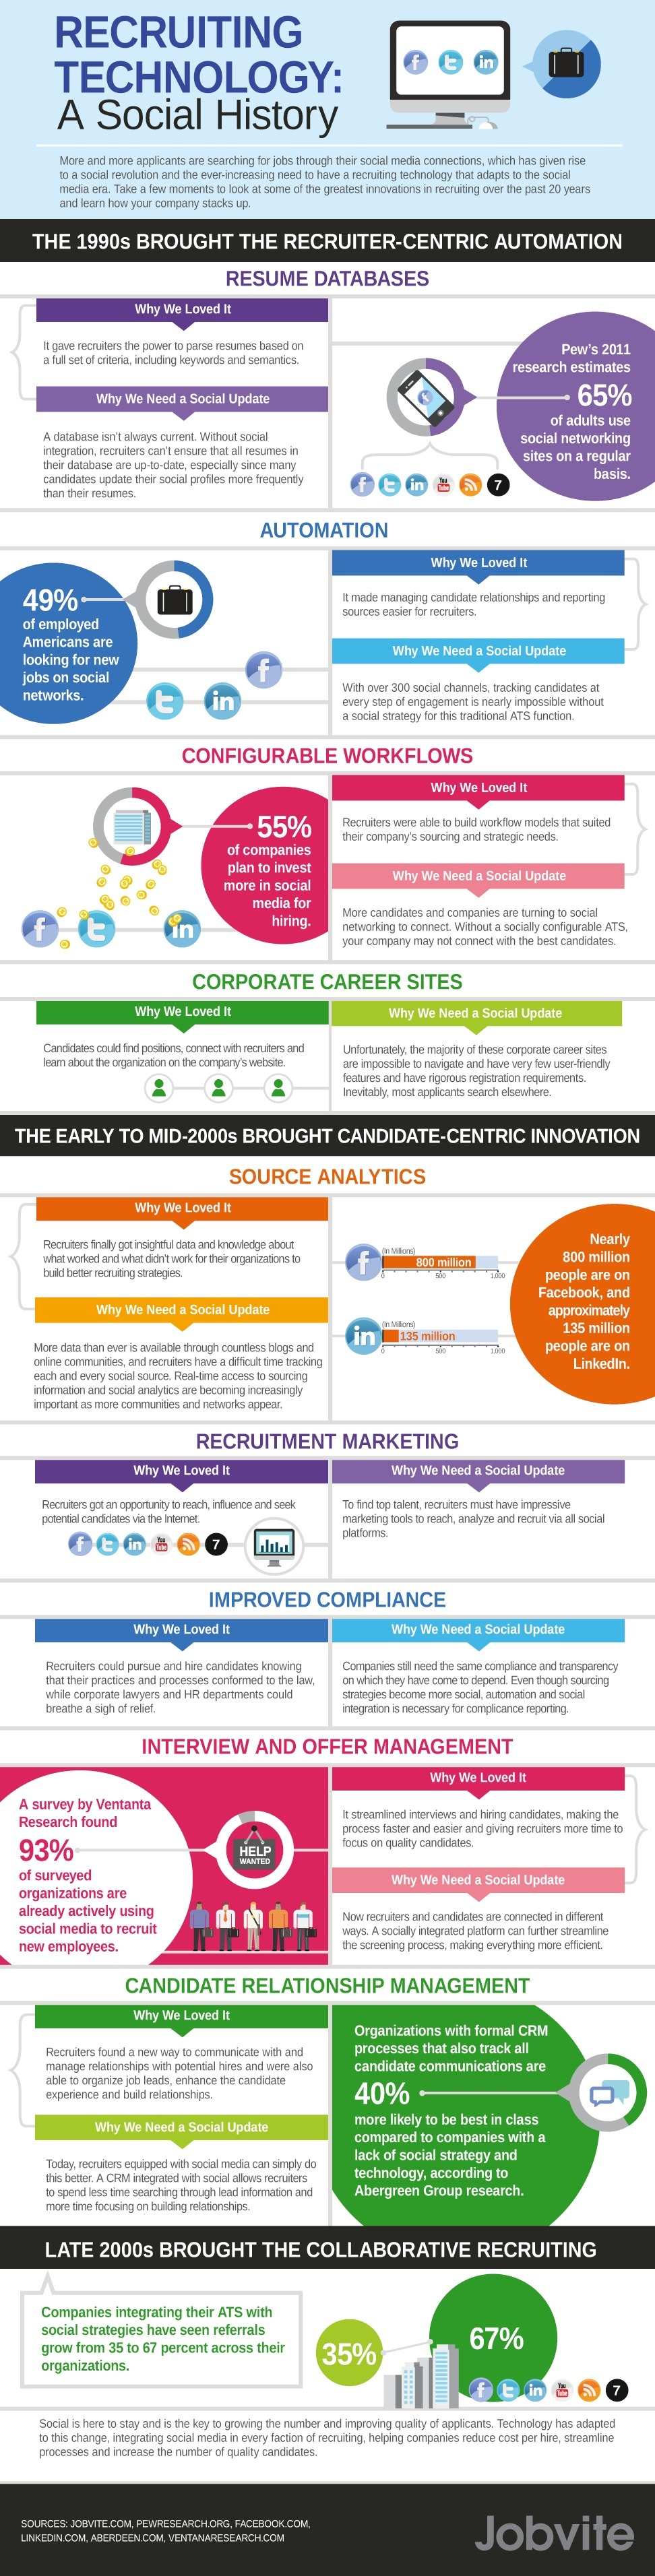 an analysis of the new trend developing in the recruiting of high tech employees The leading online hr analytics community for hr professionals learn how to practically implement people analytics within your organization to improve the workforce performance start analyzing your people data by strategically applying hr metrics to gain data-driven insights for your organization.